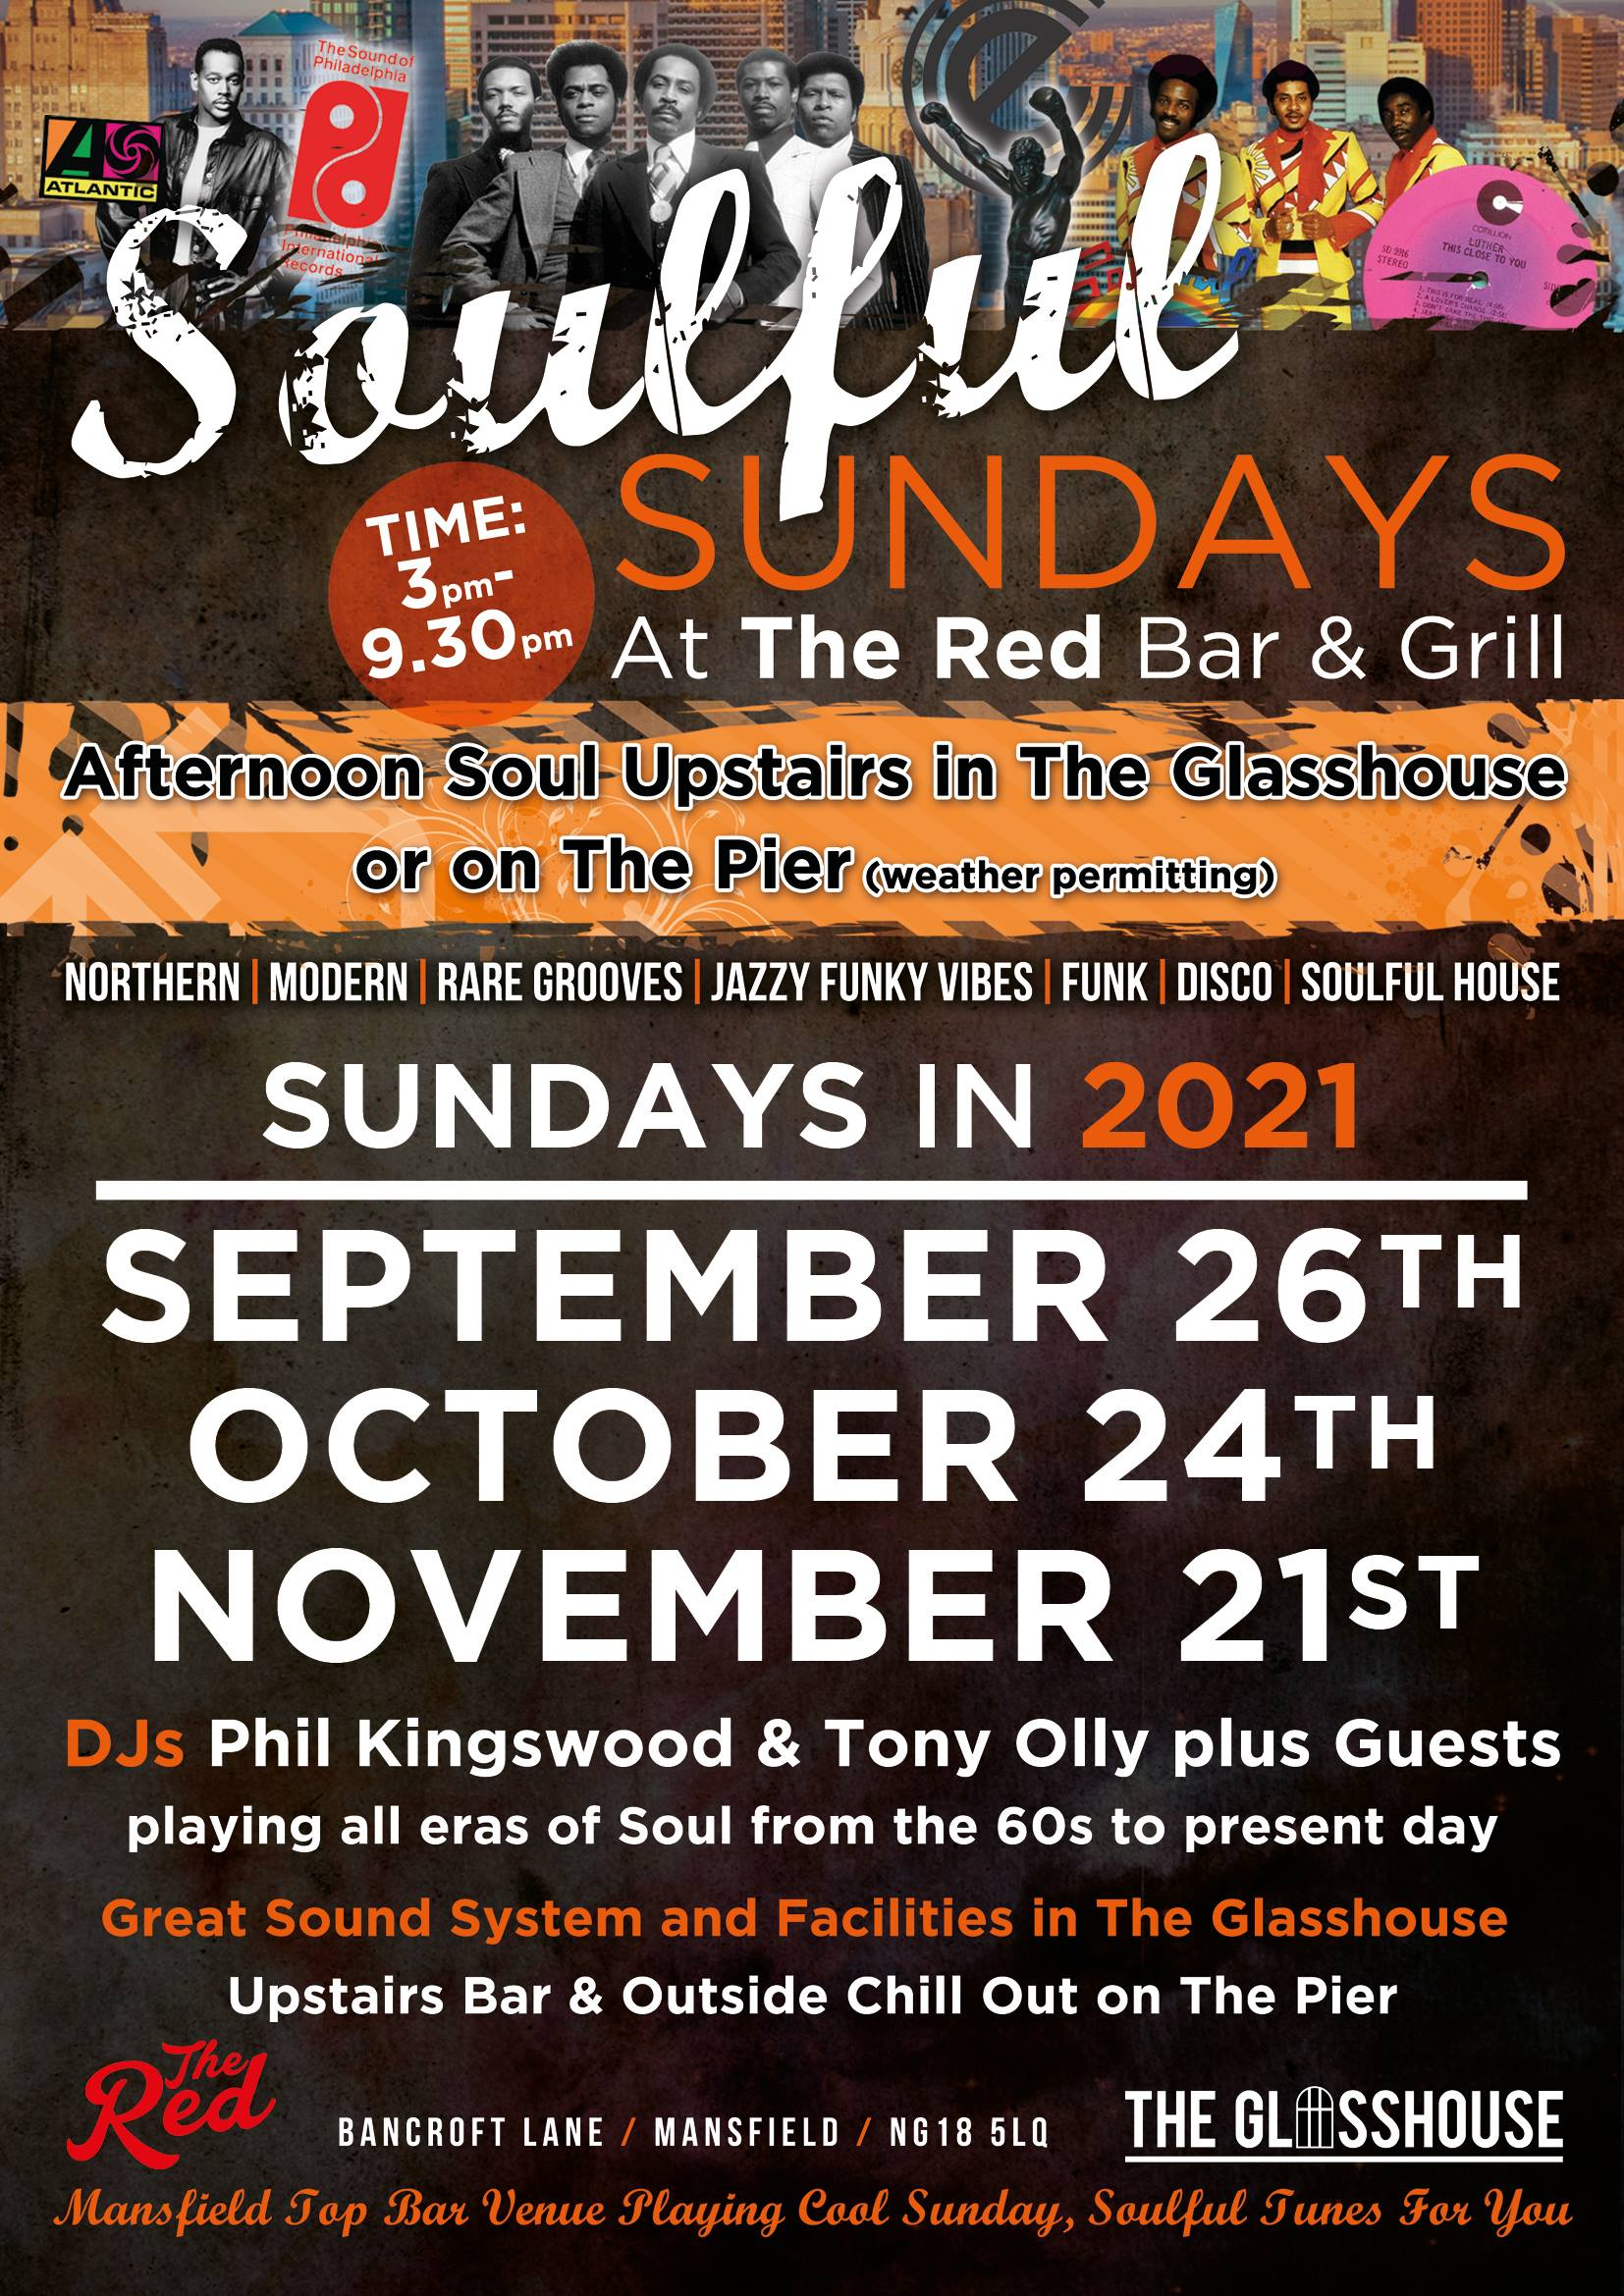 Soulful Sundays At The Red Bar  Grill flyer